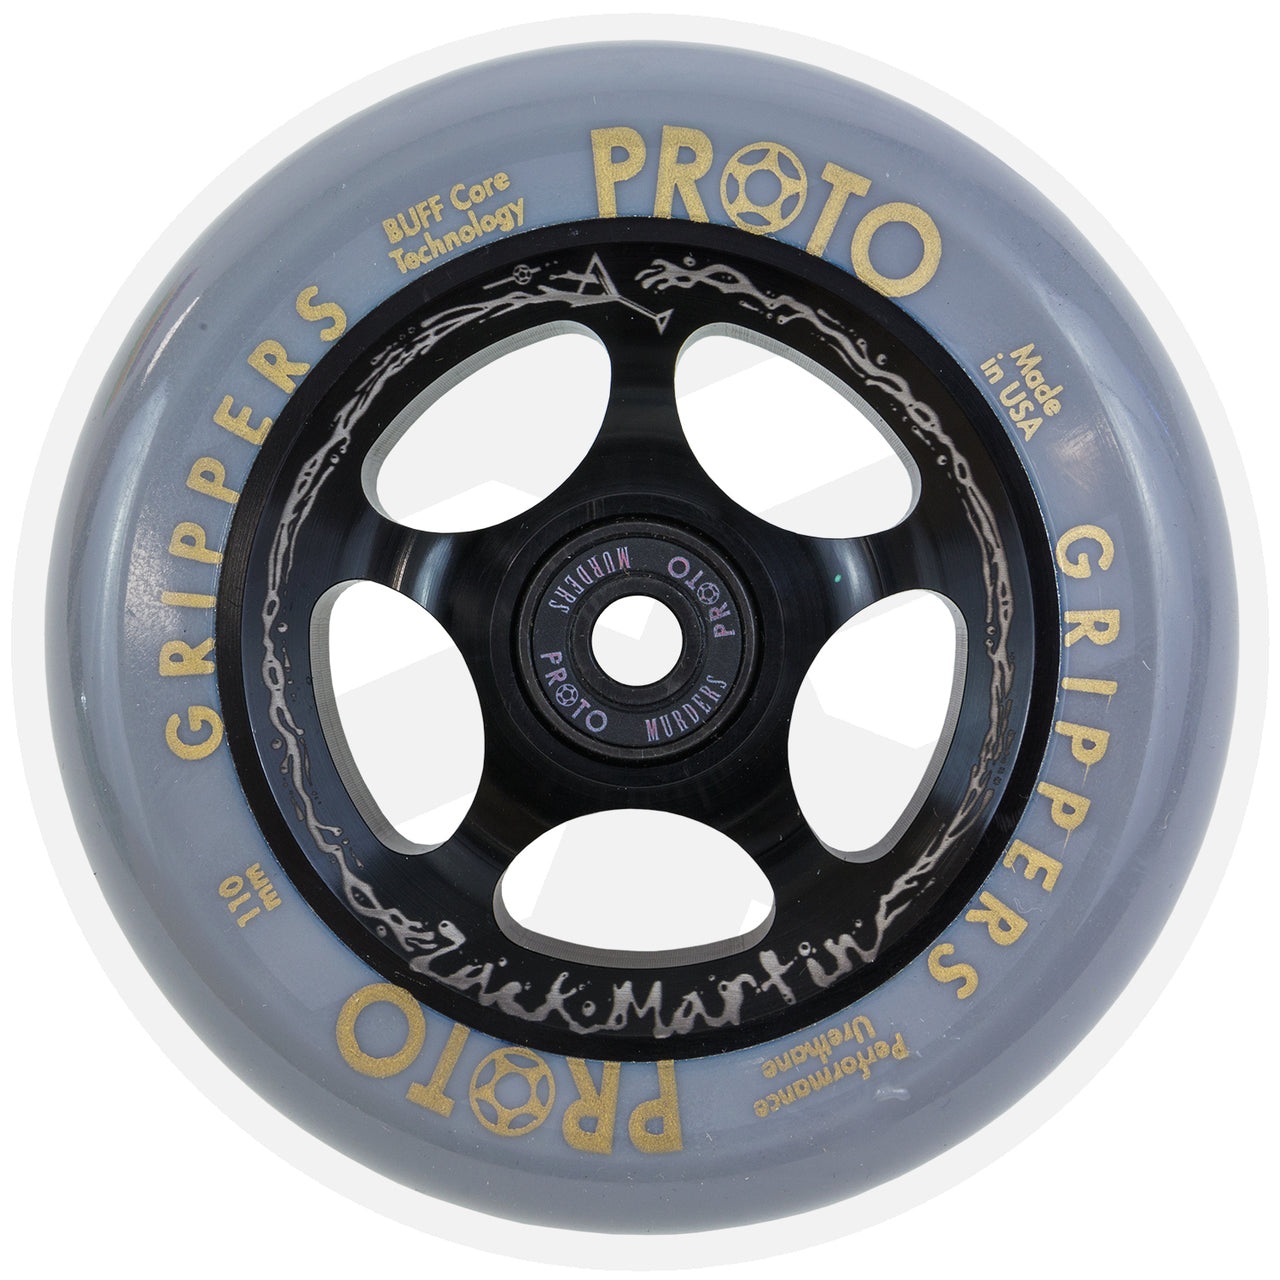 "PROTO SCOOTERS WHEELS - GRIPPERS ""WASTED"" ZACK MARTIN SIG"